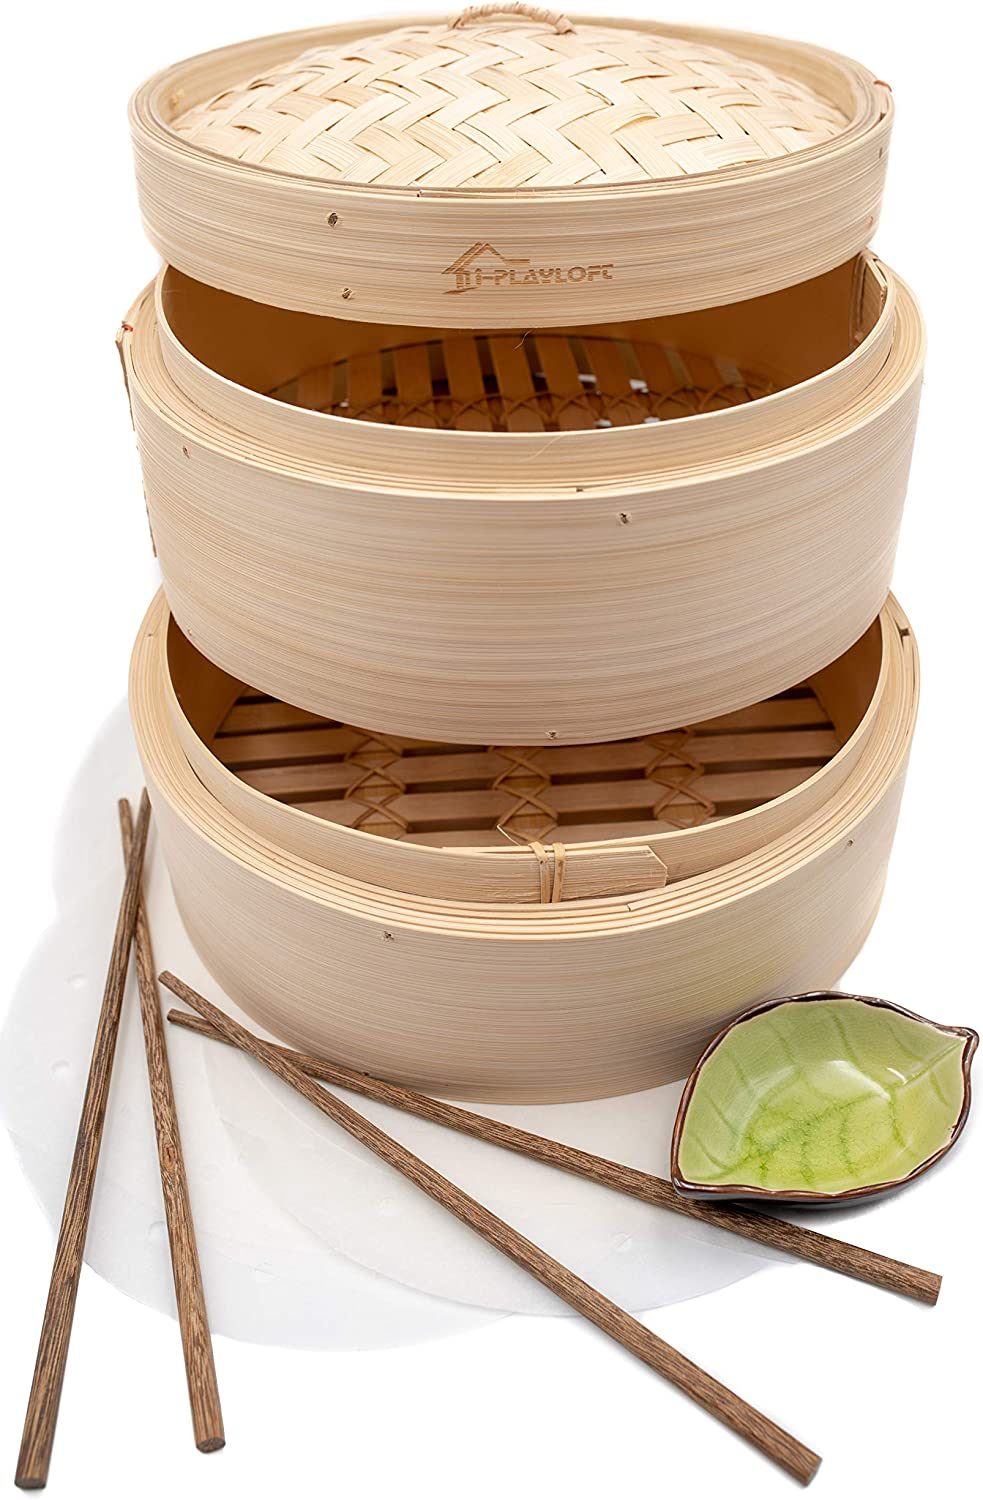 Premium 10 Inch Handmade Bamboo Steamer - Two Tier EXTRA DEPTH Baskets - Dim Sum Dumpling & Bao Bun Chinese Food Steamers - Steam Baskets For Rice, Vegetables, Meat & Fish Included 2 Sets Chopsticks, 20 Liners & Sauce Dish